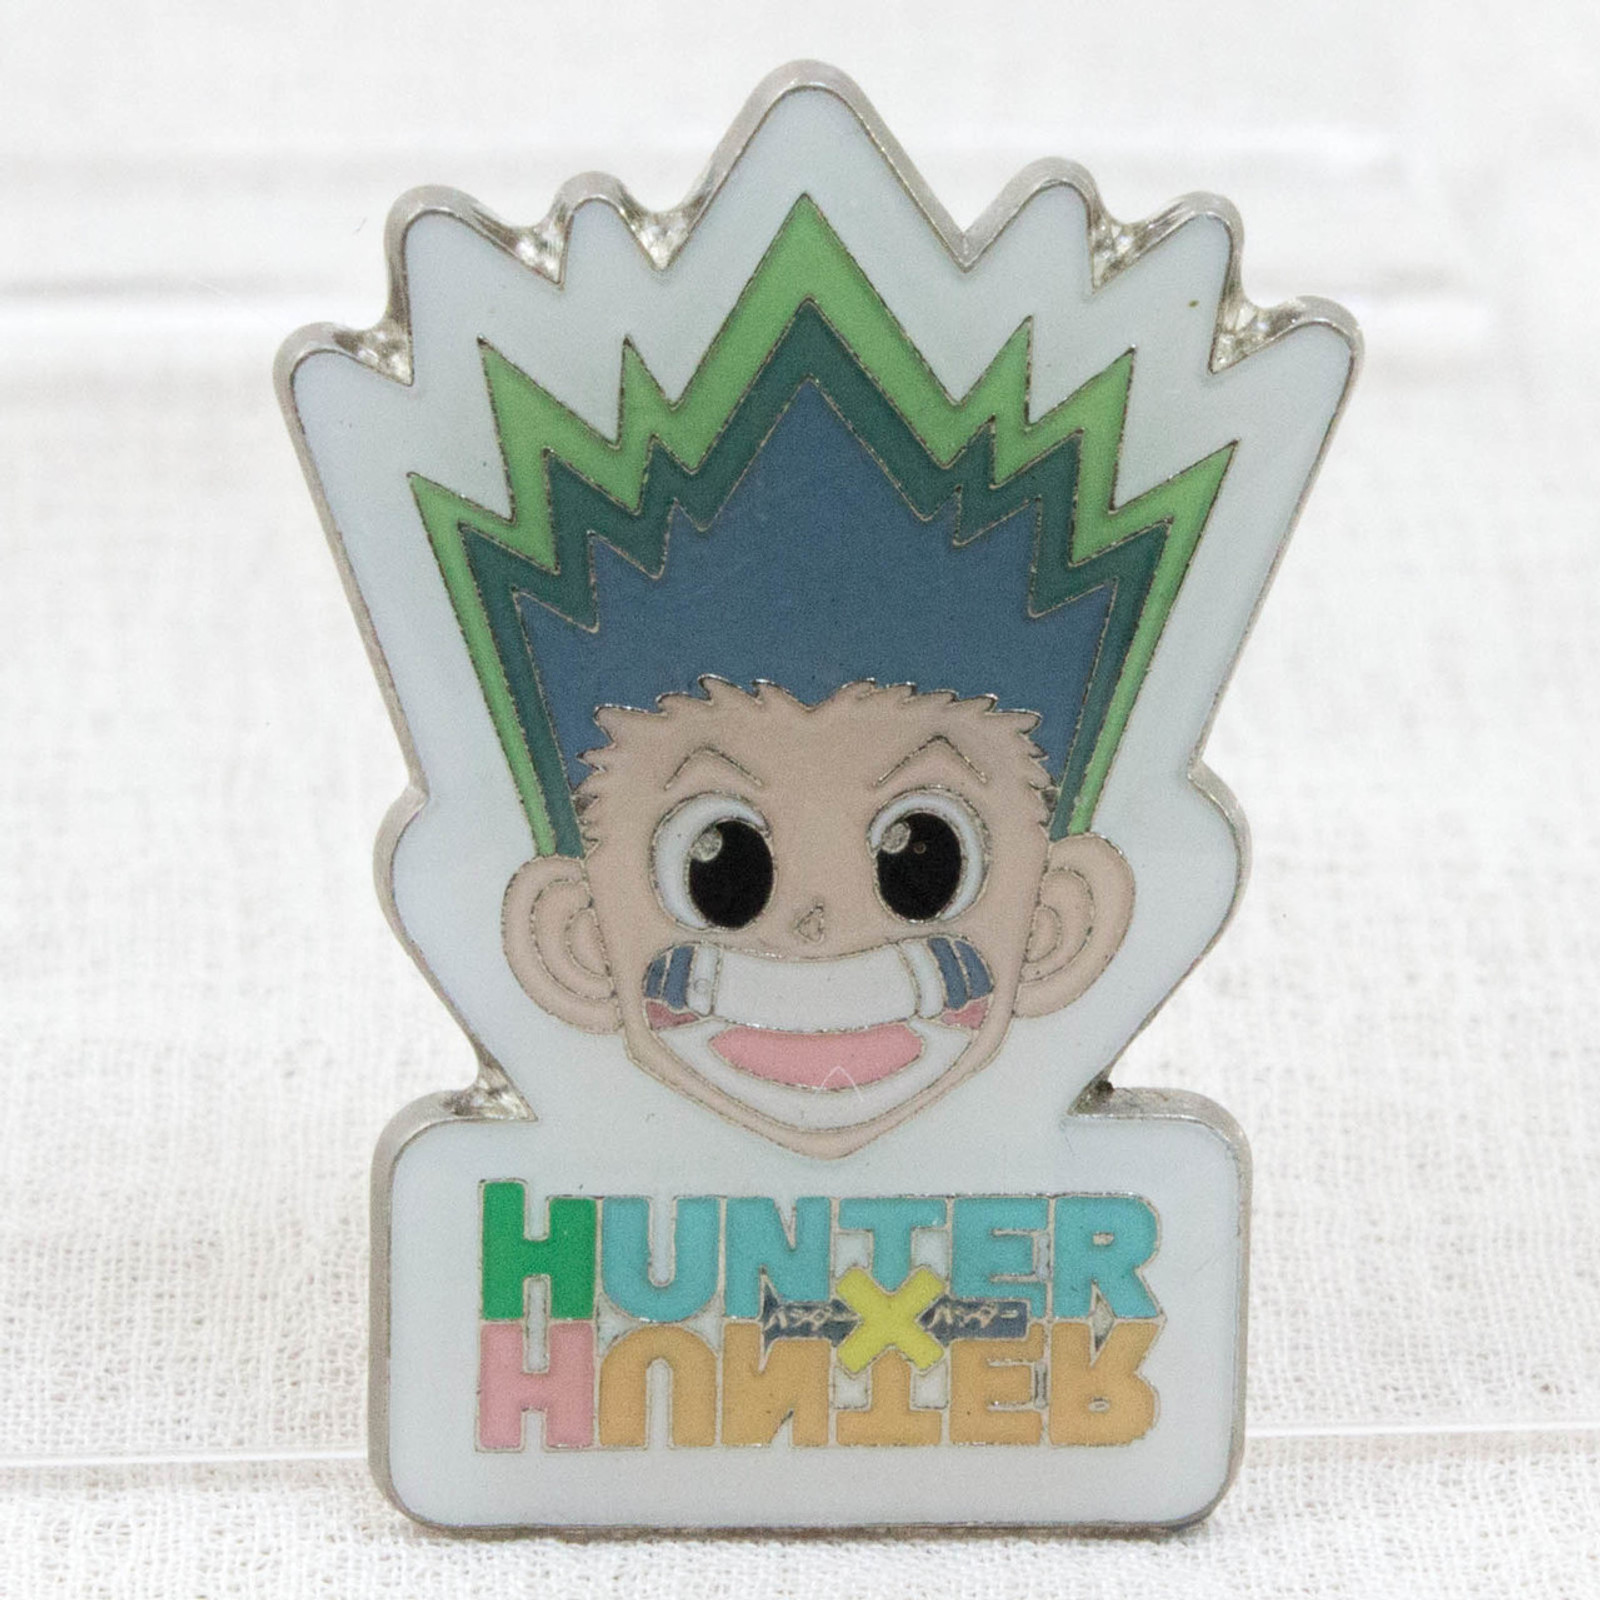 RARE! HUNTER x HUNTER Gon Freecss Pins JAPAN ANIME MANGA SHONEN JUMP